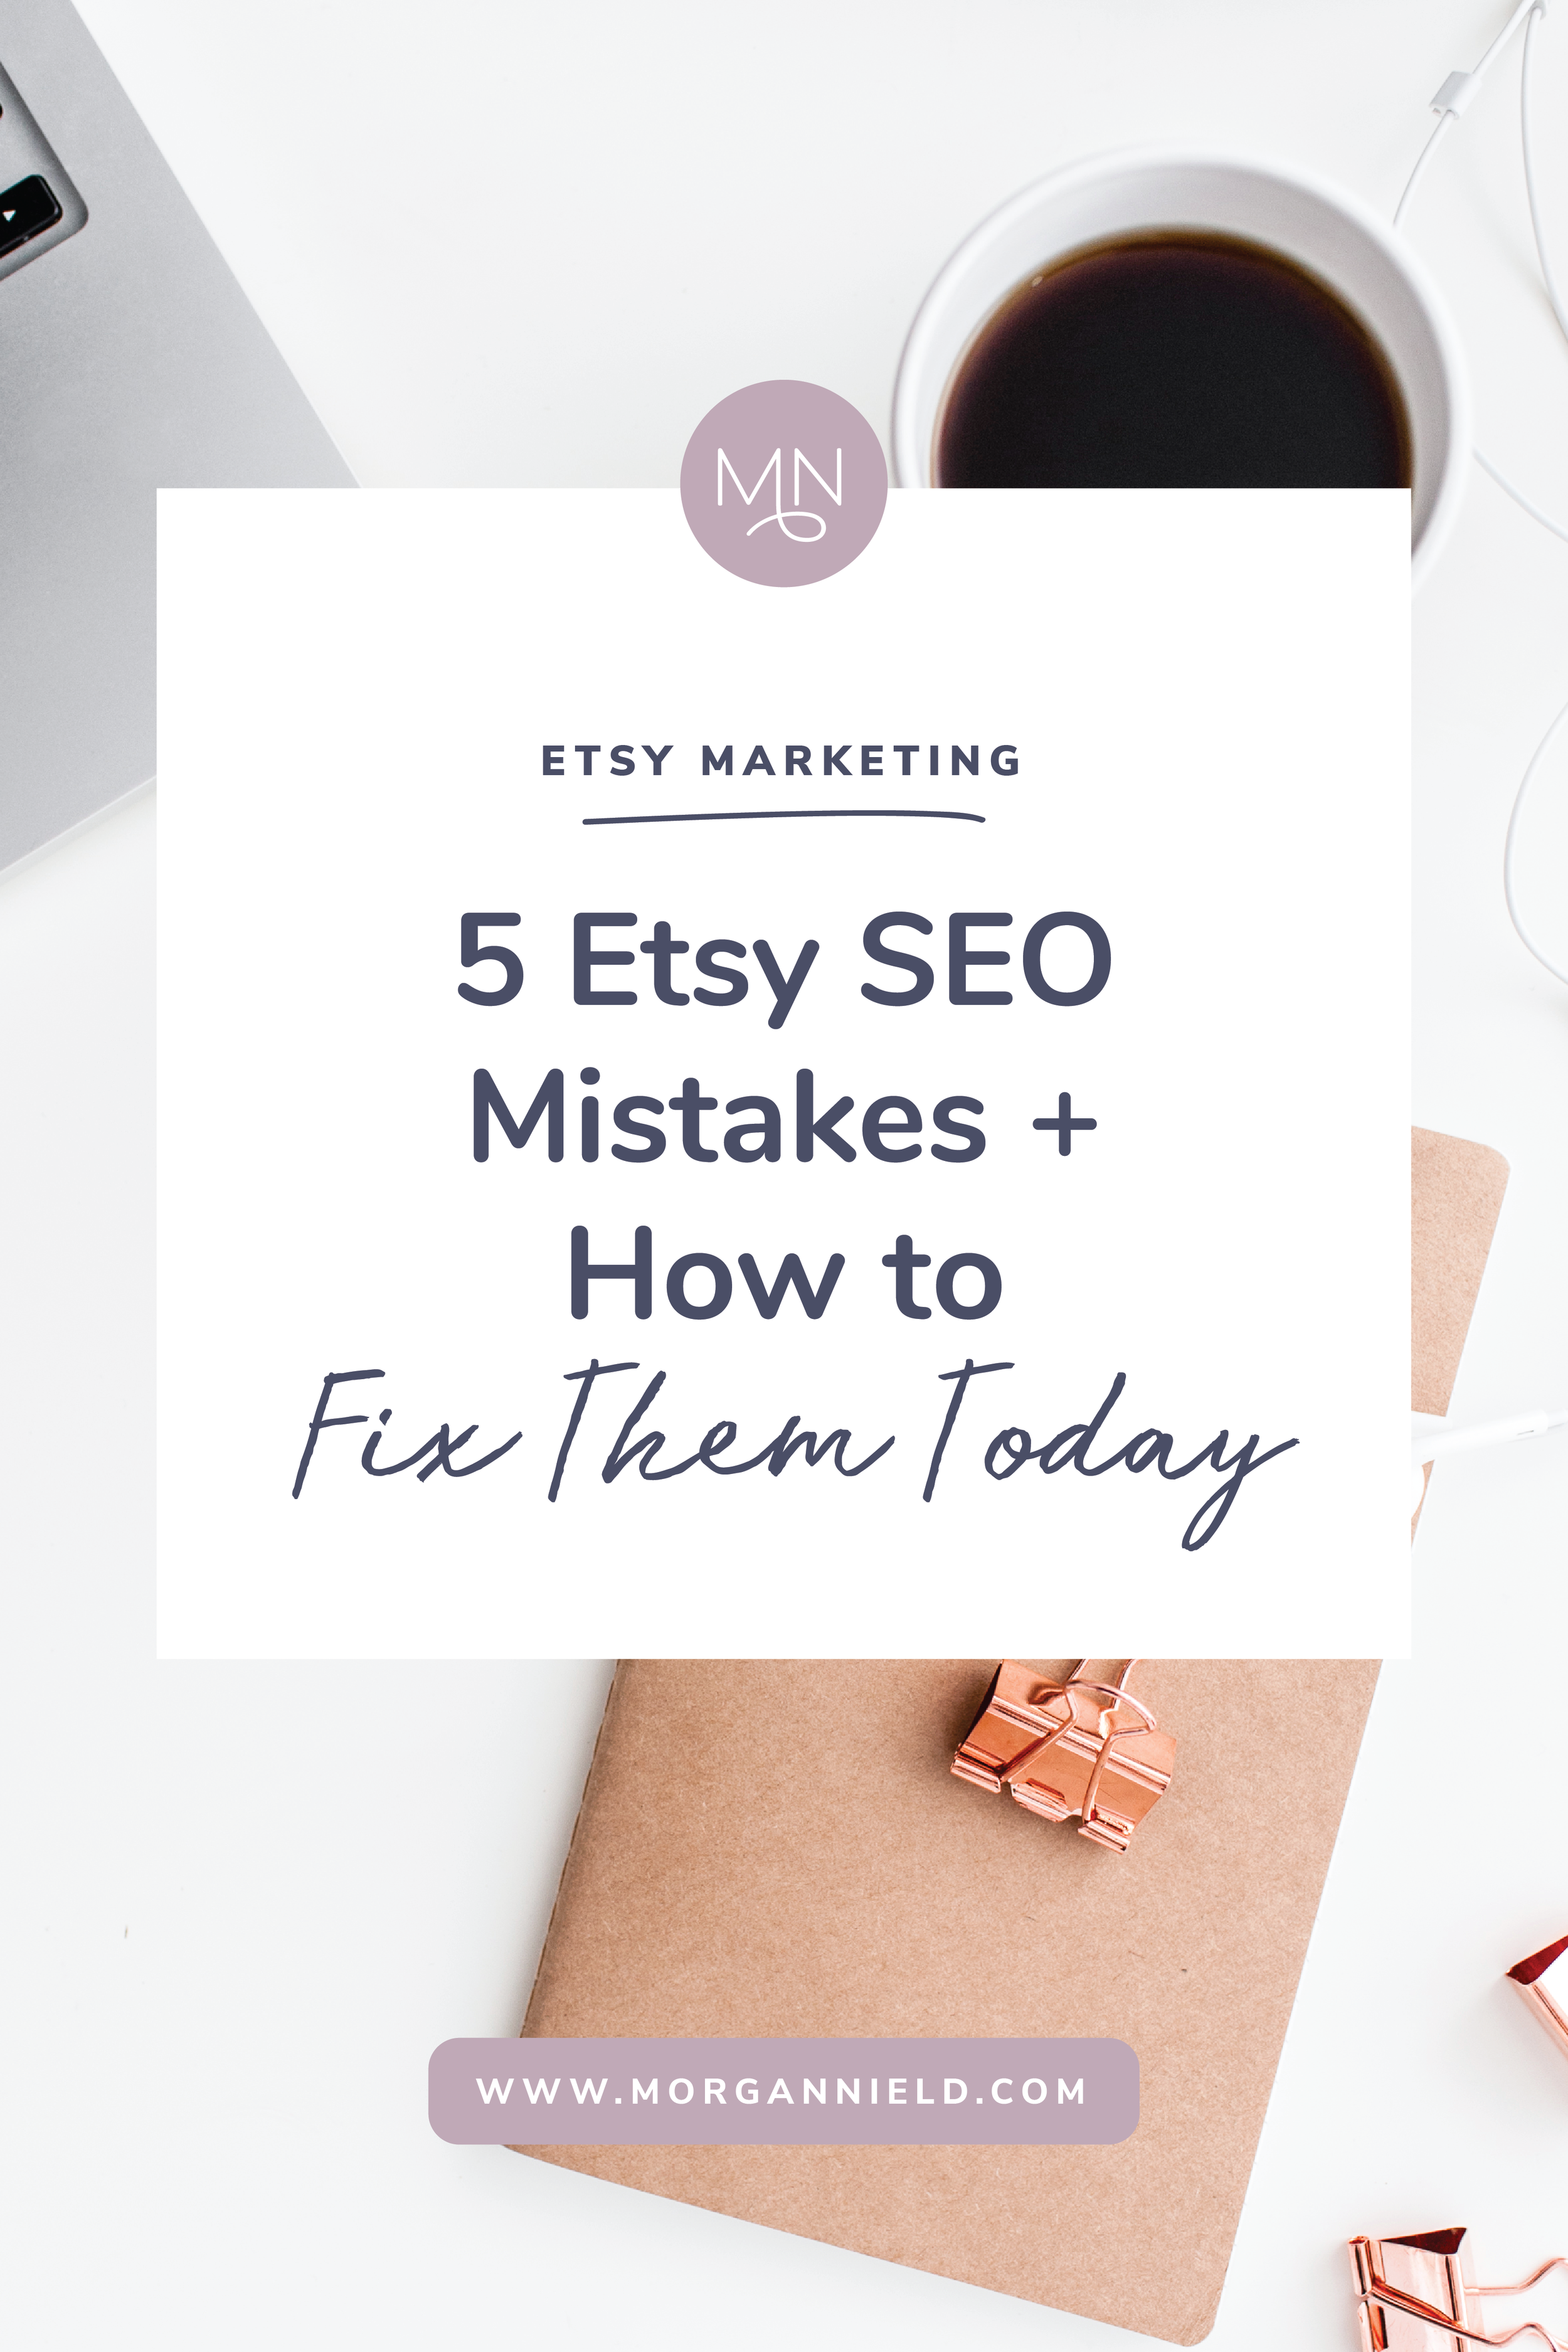 If you're looking for ways to automate your Etsy marketing and get your product in front of the right people-- and quickly-- then getting your SEO ducks in a row with Etsy is ABSOLUTELY worth it because it's the type of marketing strategy that makes you money in your sleep.